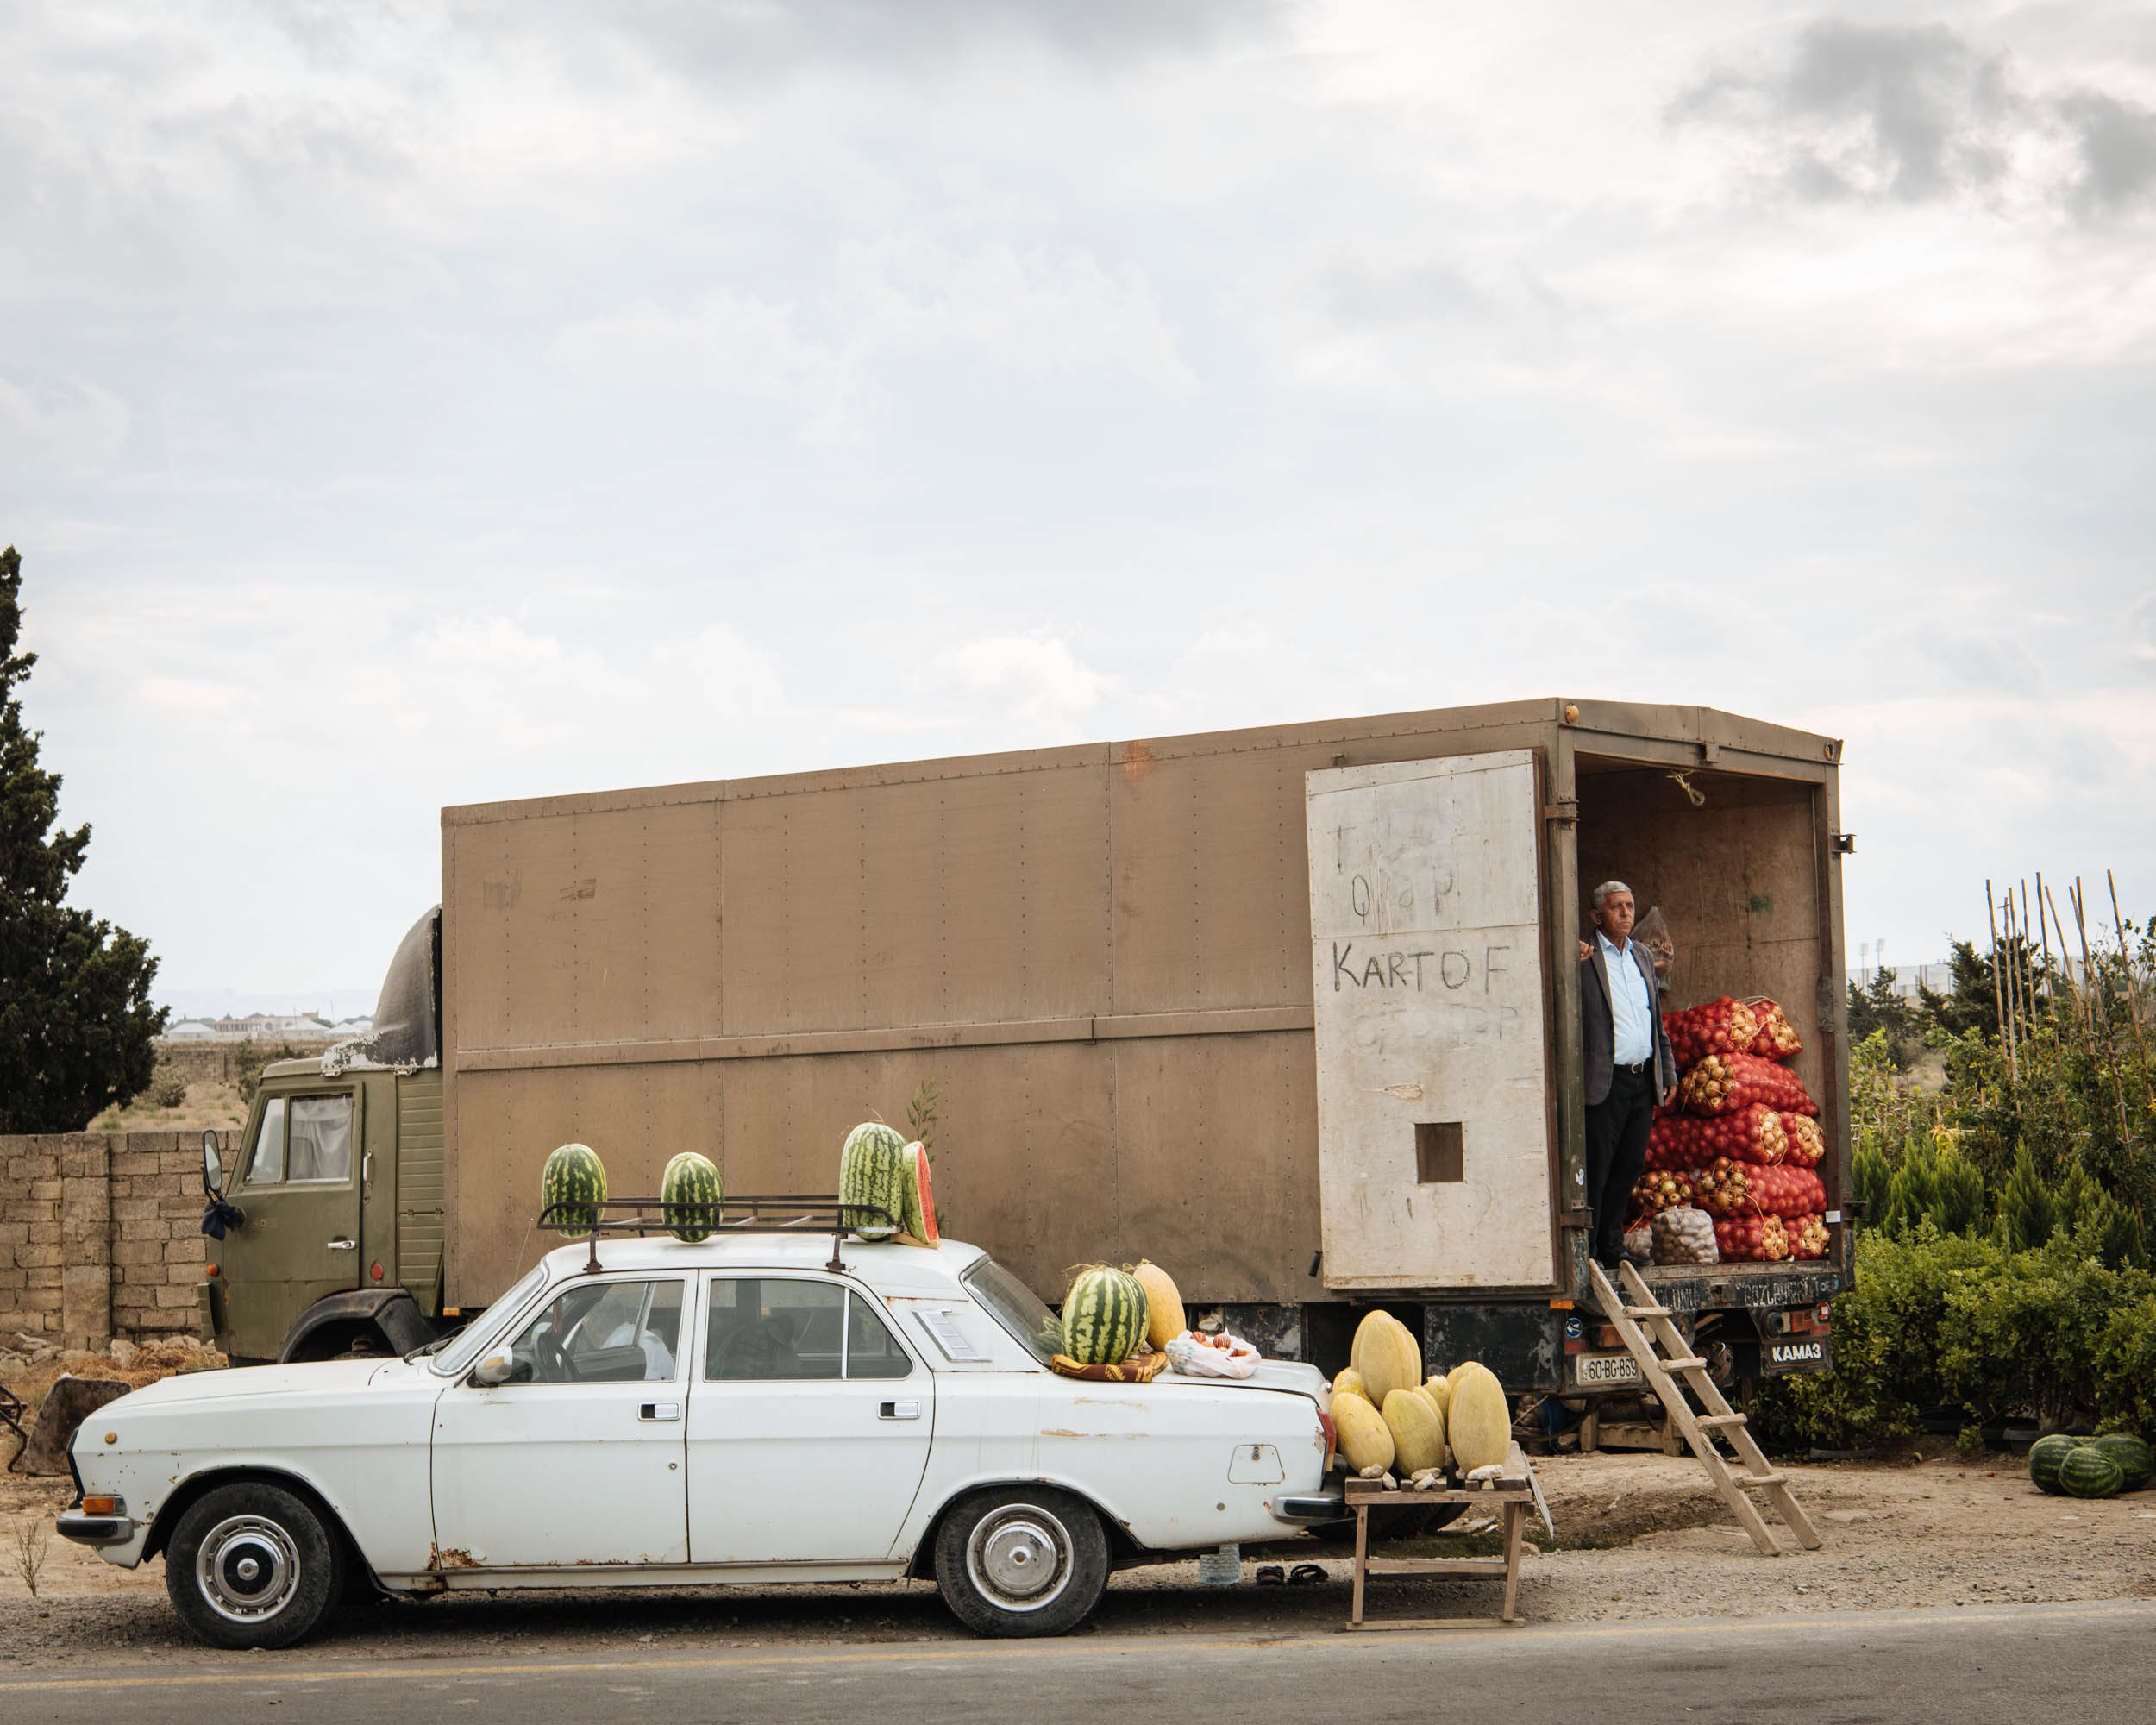 tradition-road-stall-watermelons-azerbaijan